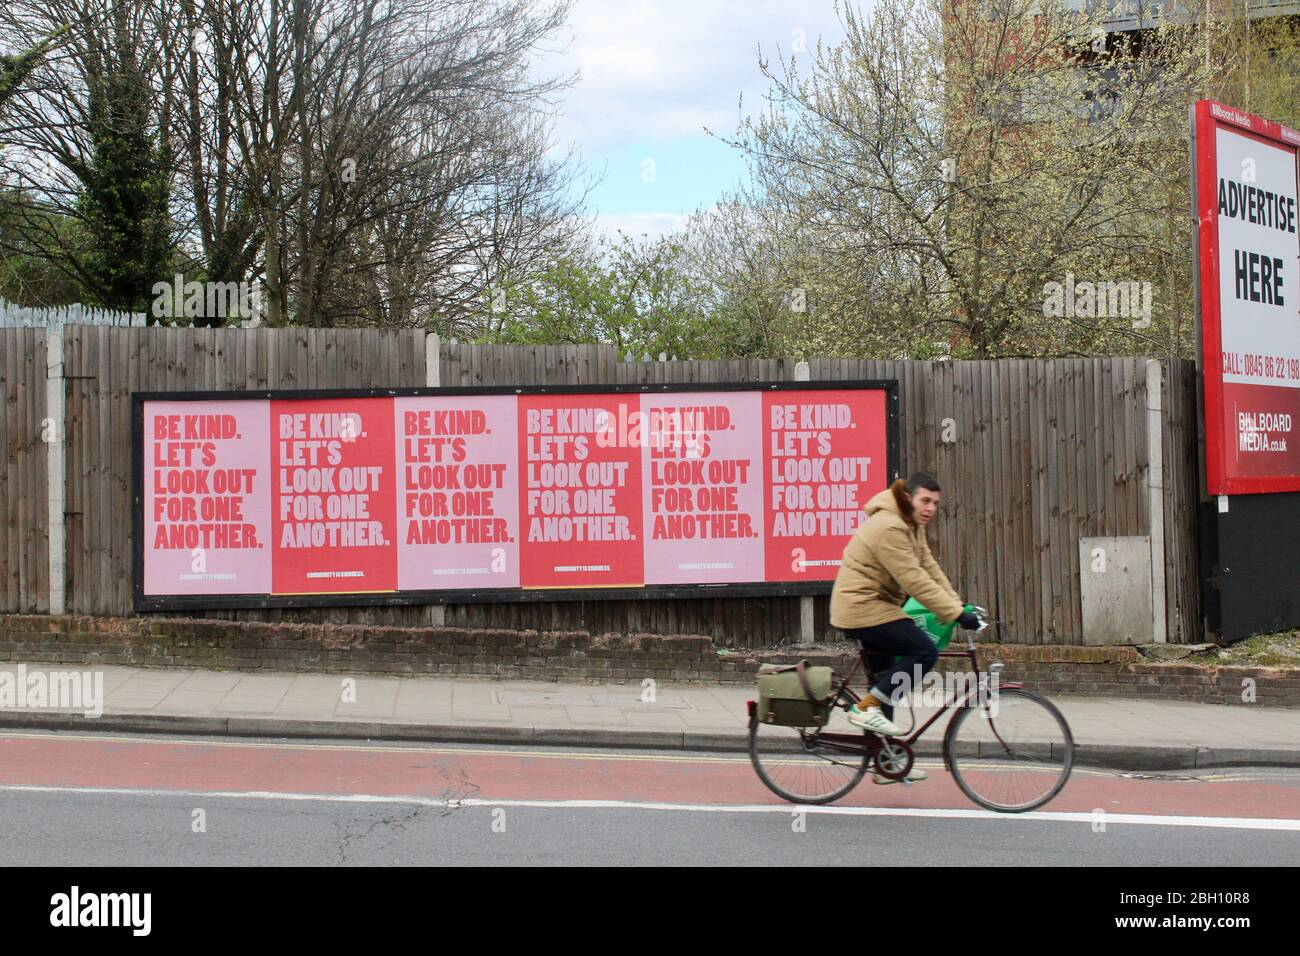 posters in haringey london england Uk say be kind lets look out for one another during corona pandemic 2020 april Stock Photo